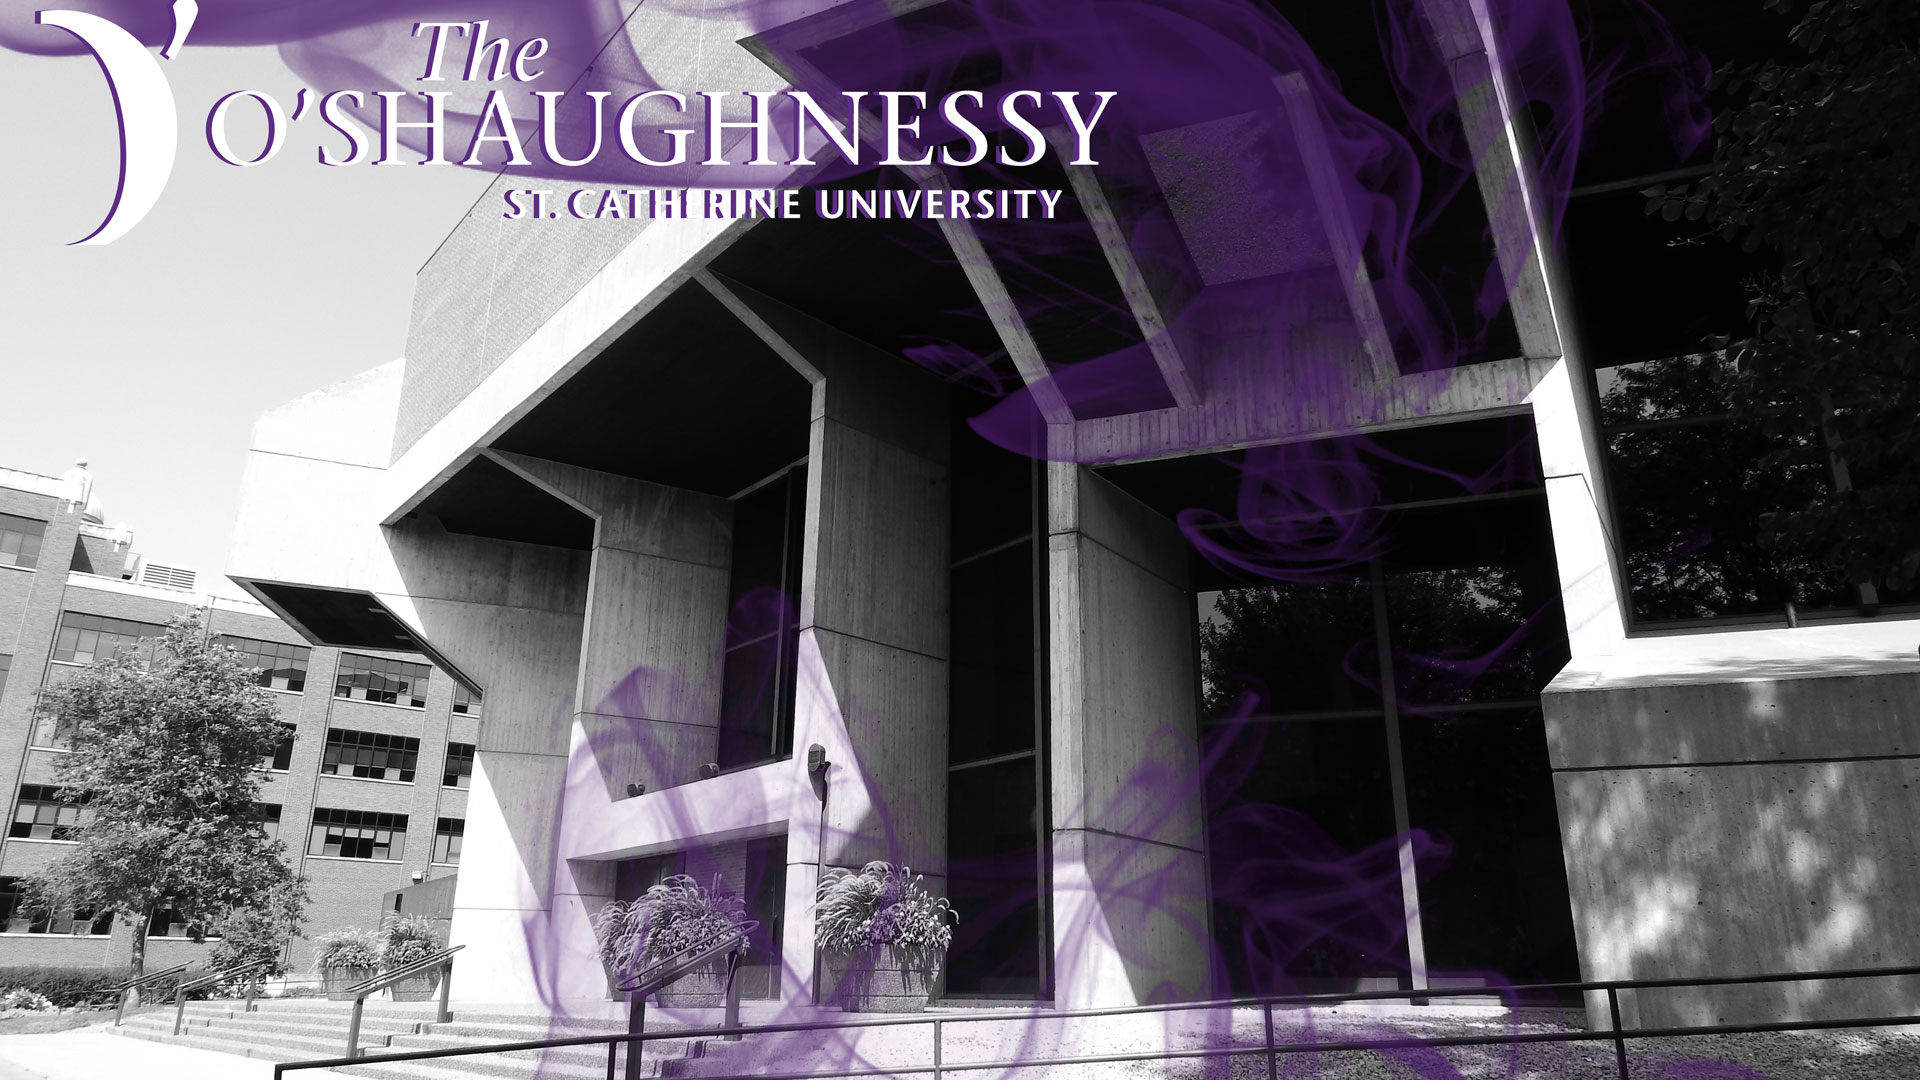 The O'Shaughnessy at St. Catherine University